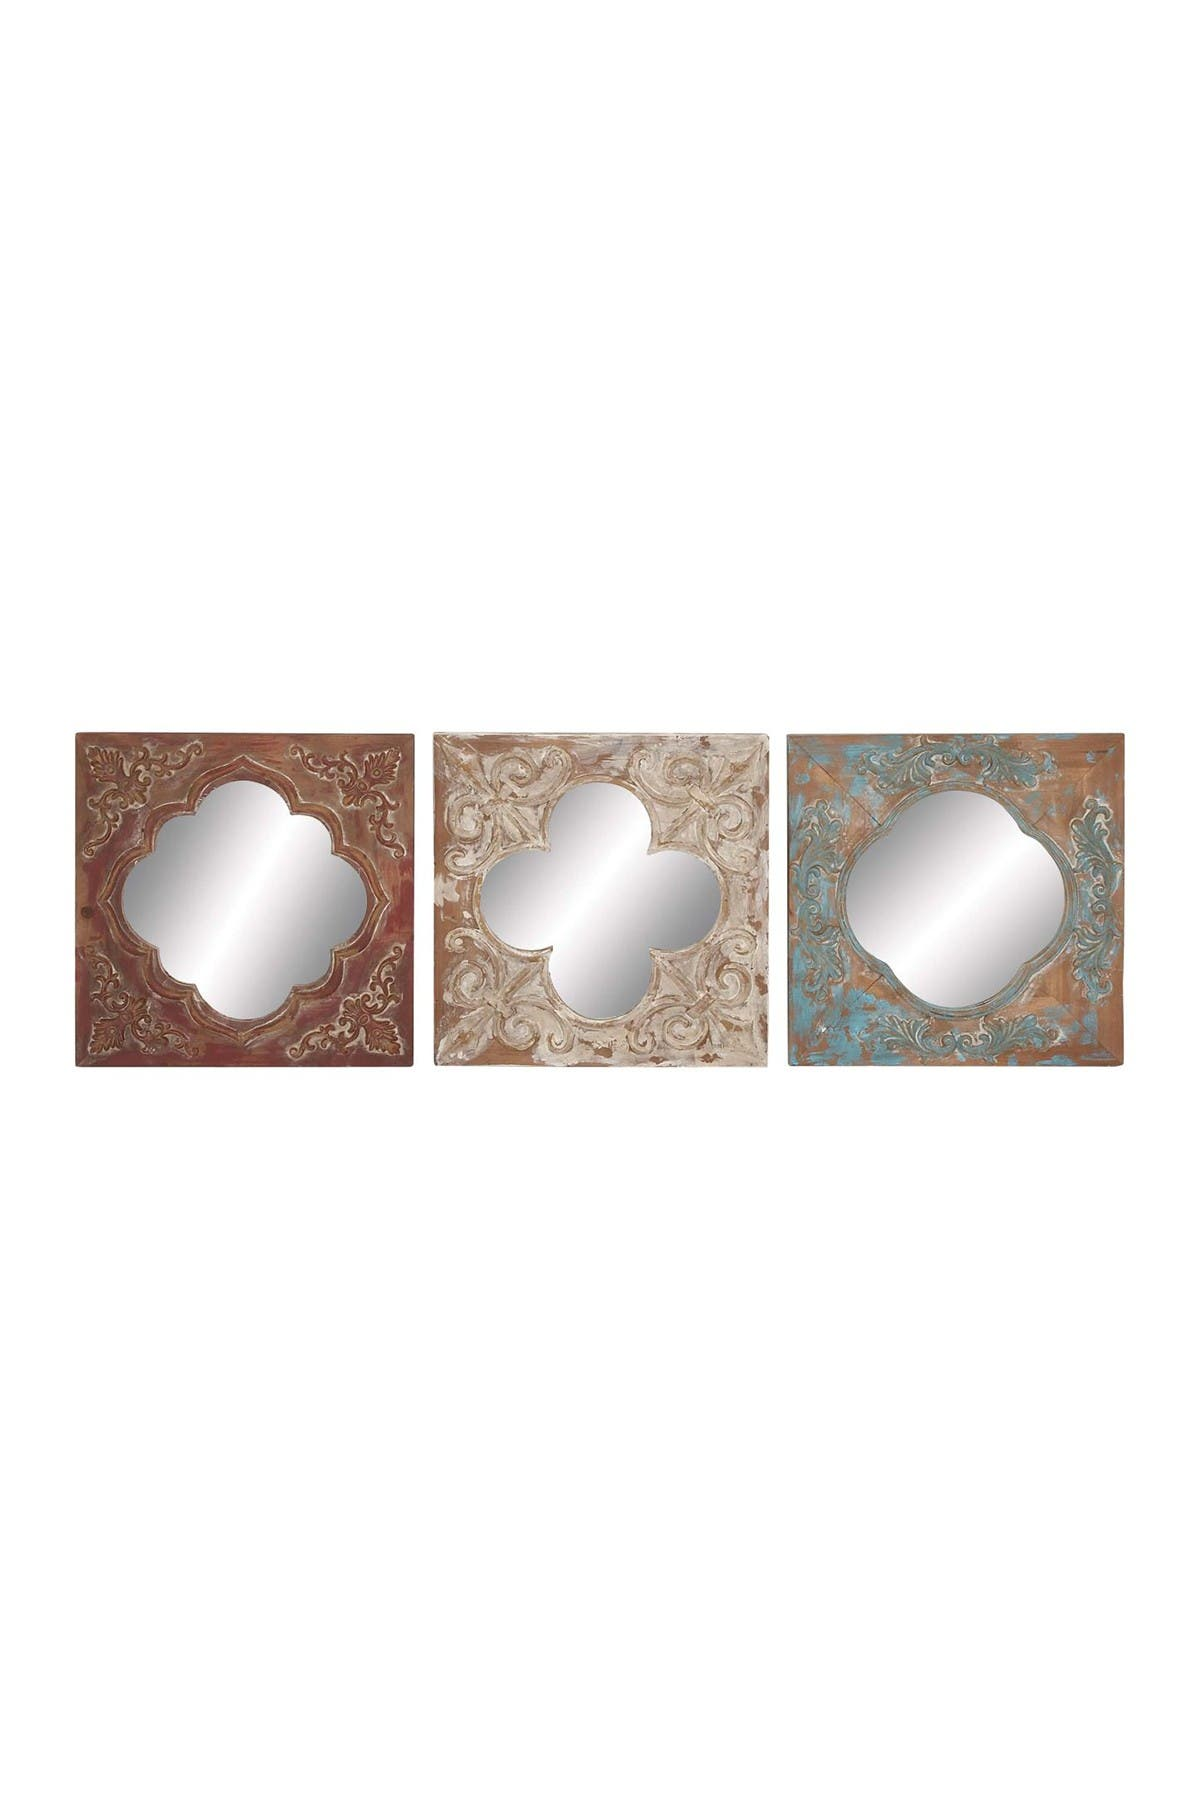 """Image of Willow Row Moroccan Tile Mirrors - 16"""" x 16"""" - Set of 3"""